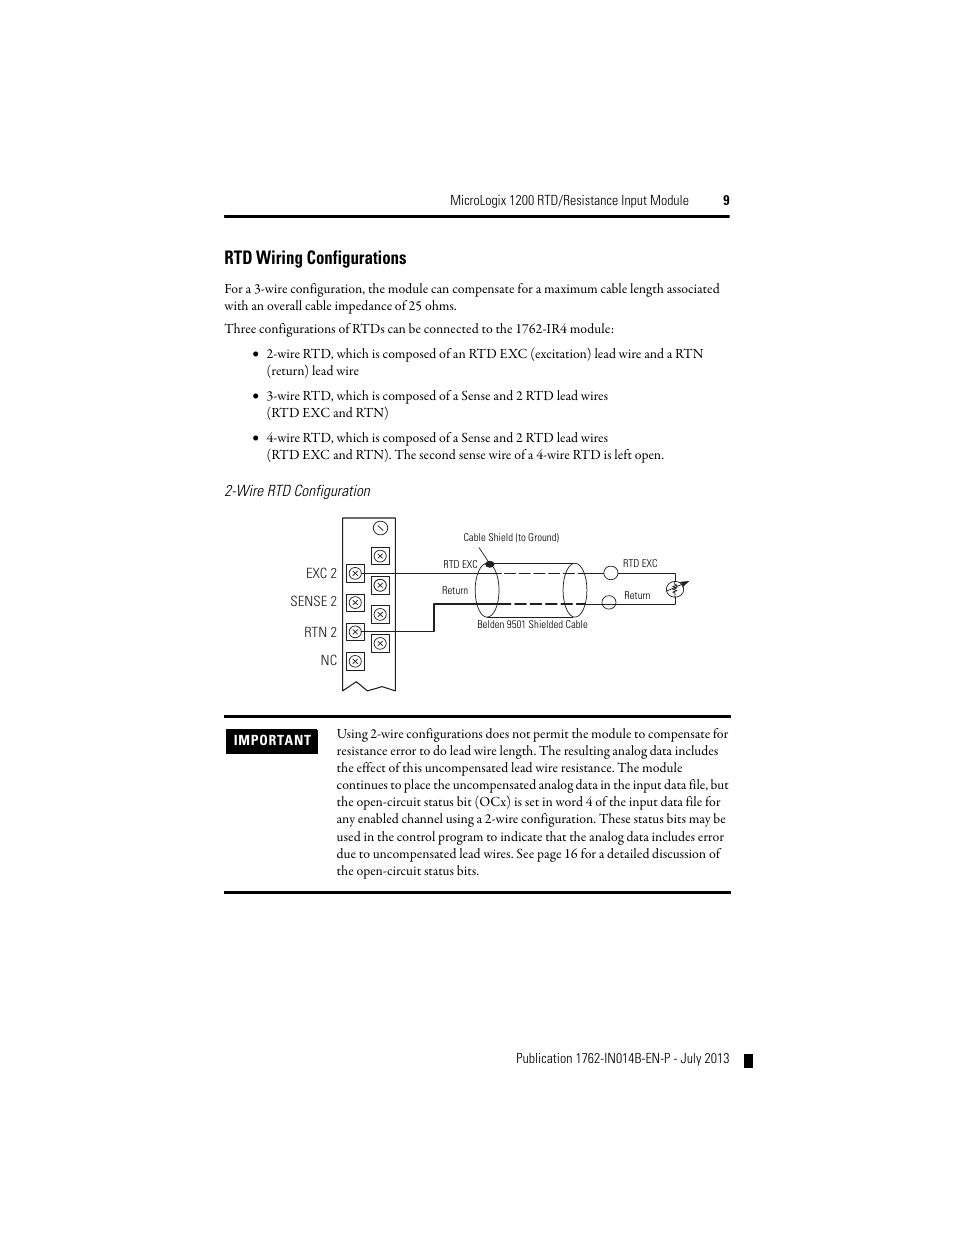 rtd wiring configurations rockwell automation 1762 ir4 rtd 16 Ohms 2wire Rtd rtd wiring configurations rockwell automation 1762 ir4 rtd resistance input module user manual page 9 24